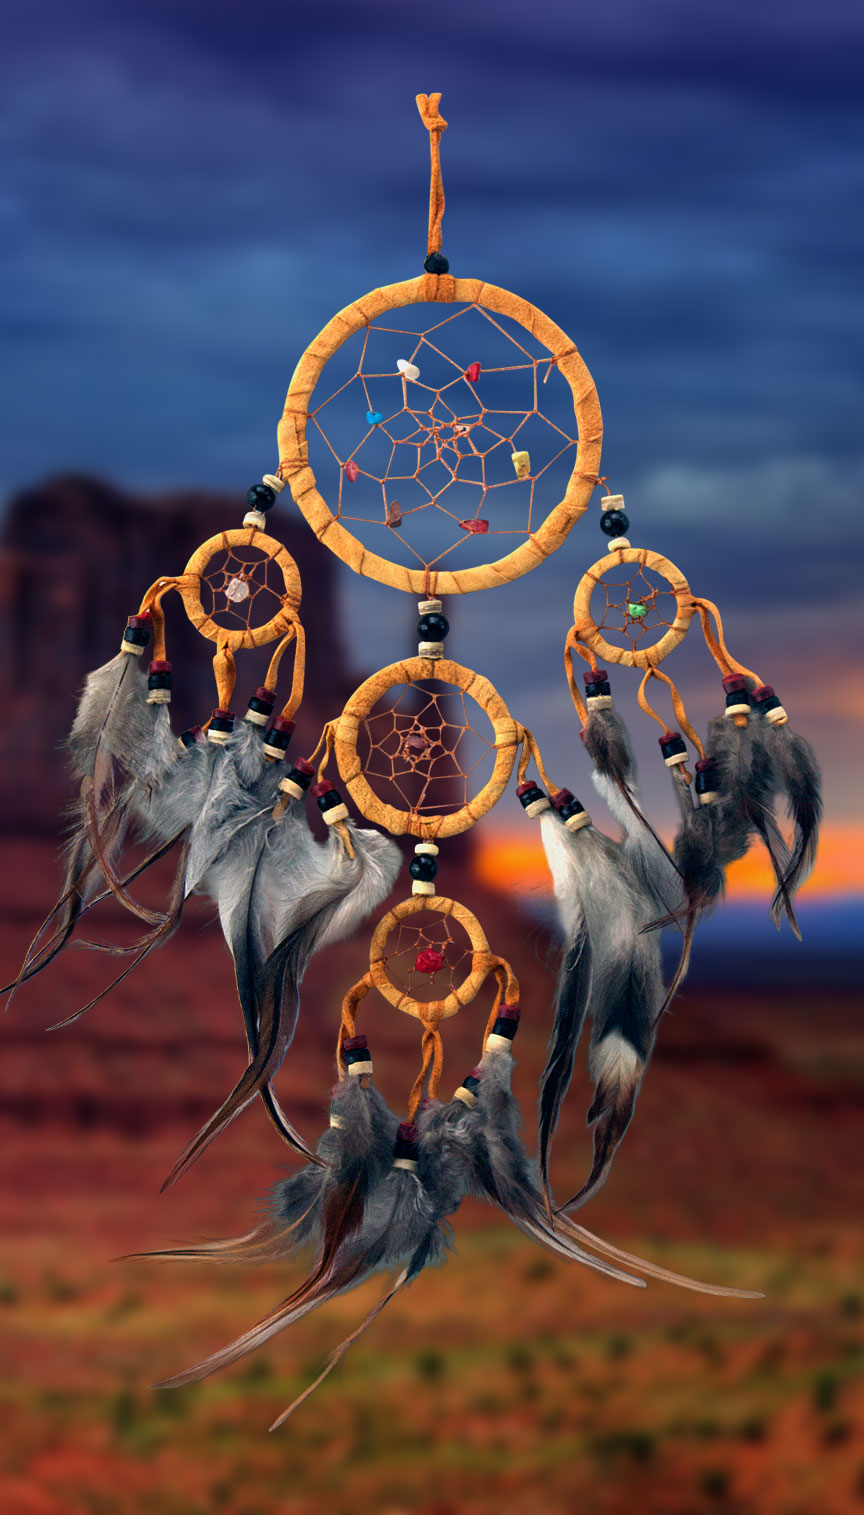 Shows an image of dreamcatcher owg010 on a scenic background